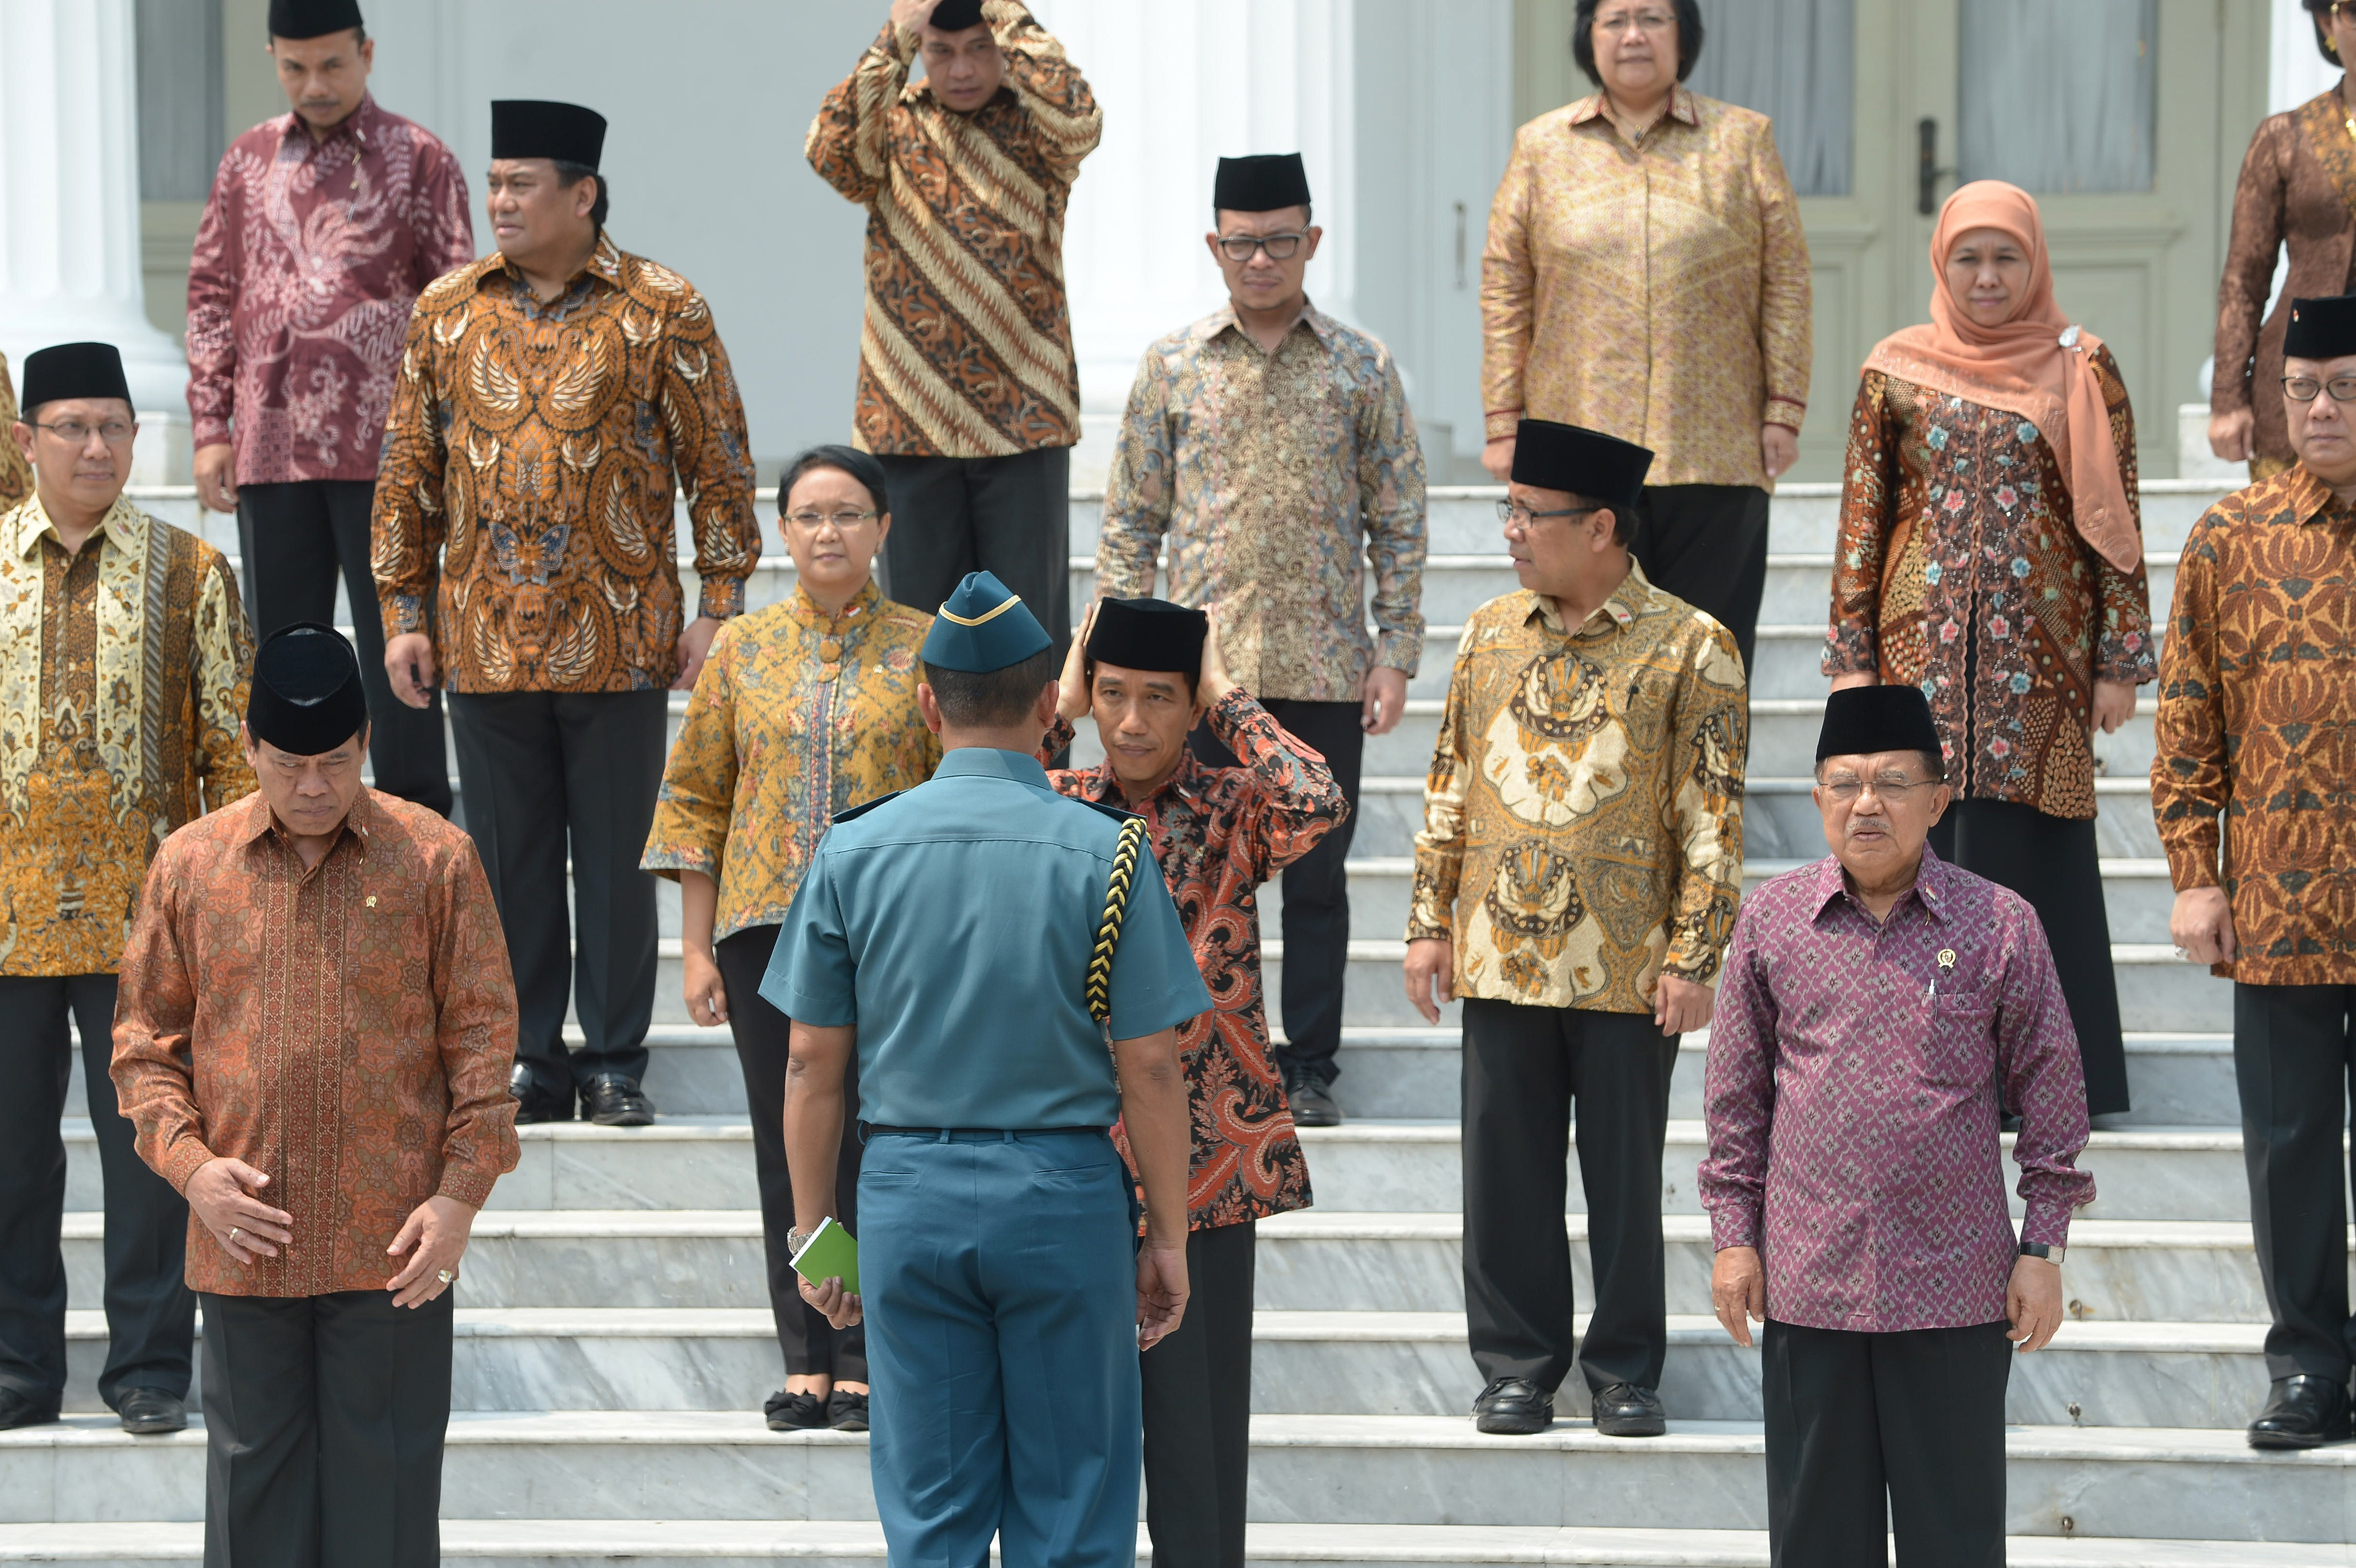 Indonesian President Joko Widodo, center, adjusts his cap next to Vice President Jusuf Kalla, front right, and surrounded by members of his new Cabinet at the presidential palace in Jakarta on Oct. 27, 2014